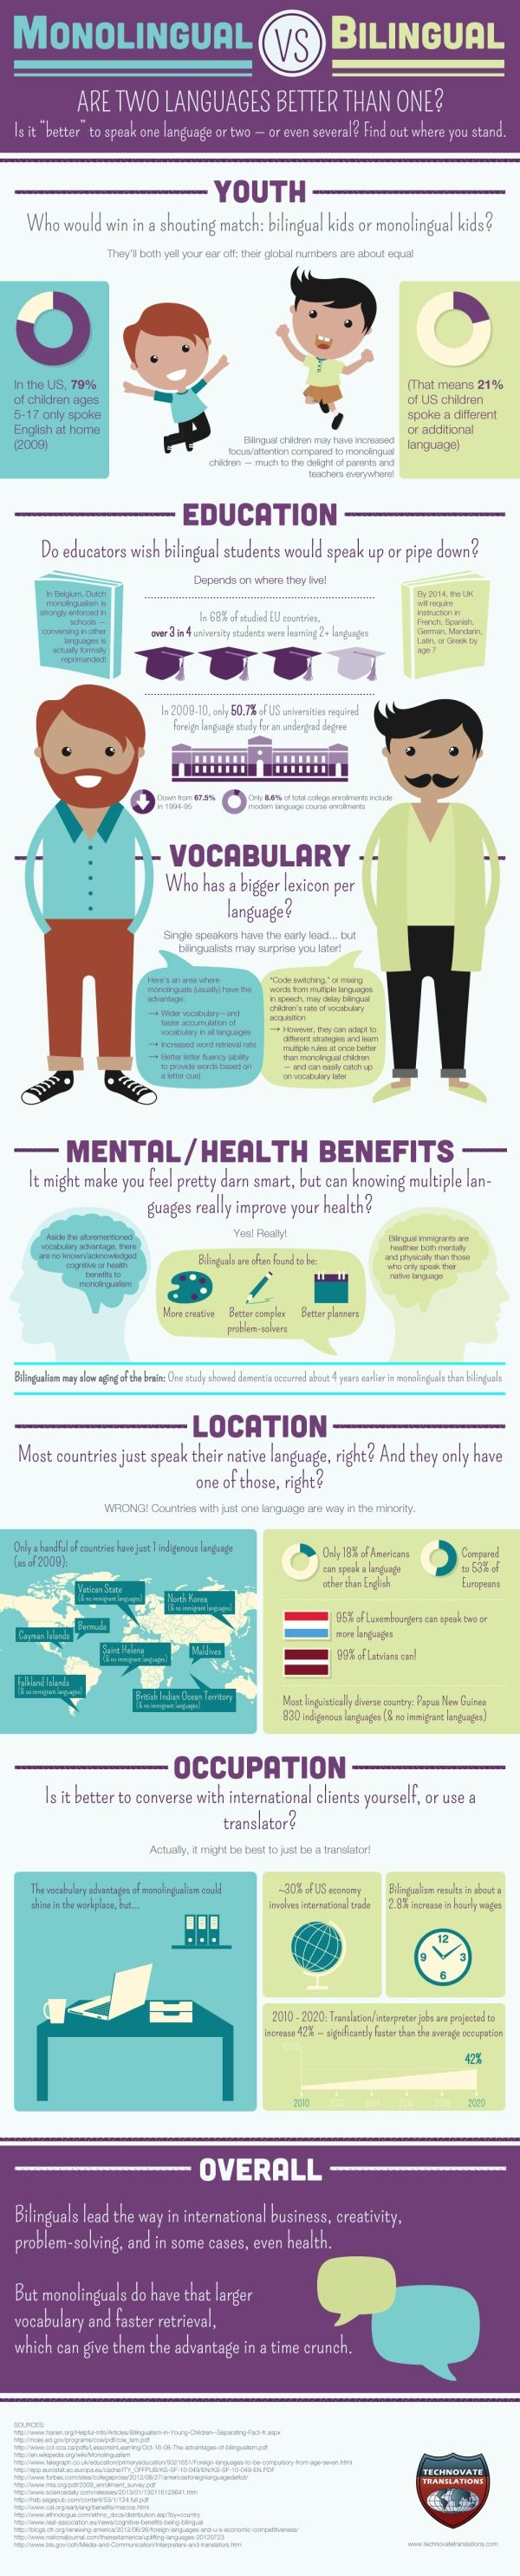 The benefits of being bilingual.